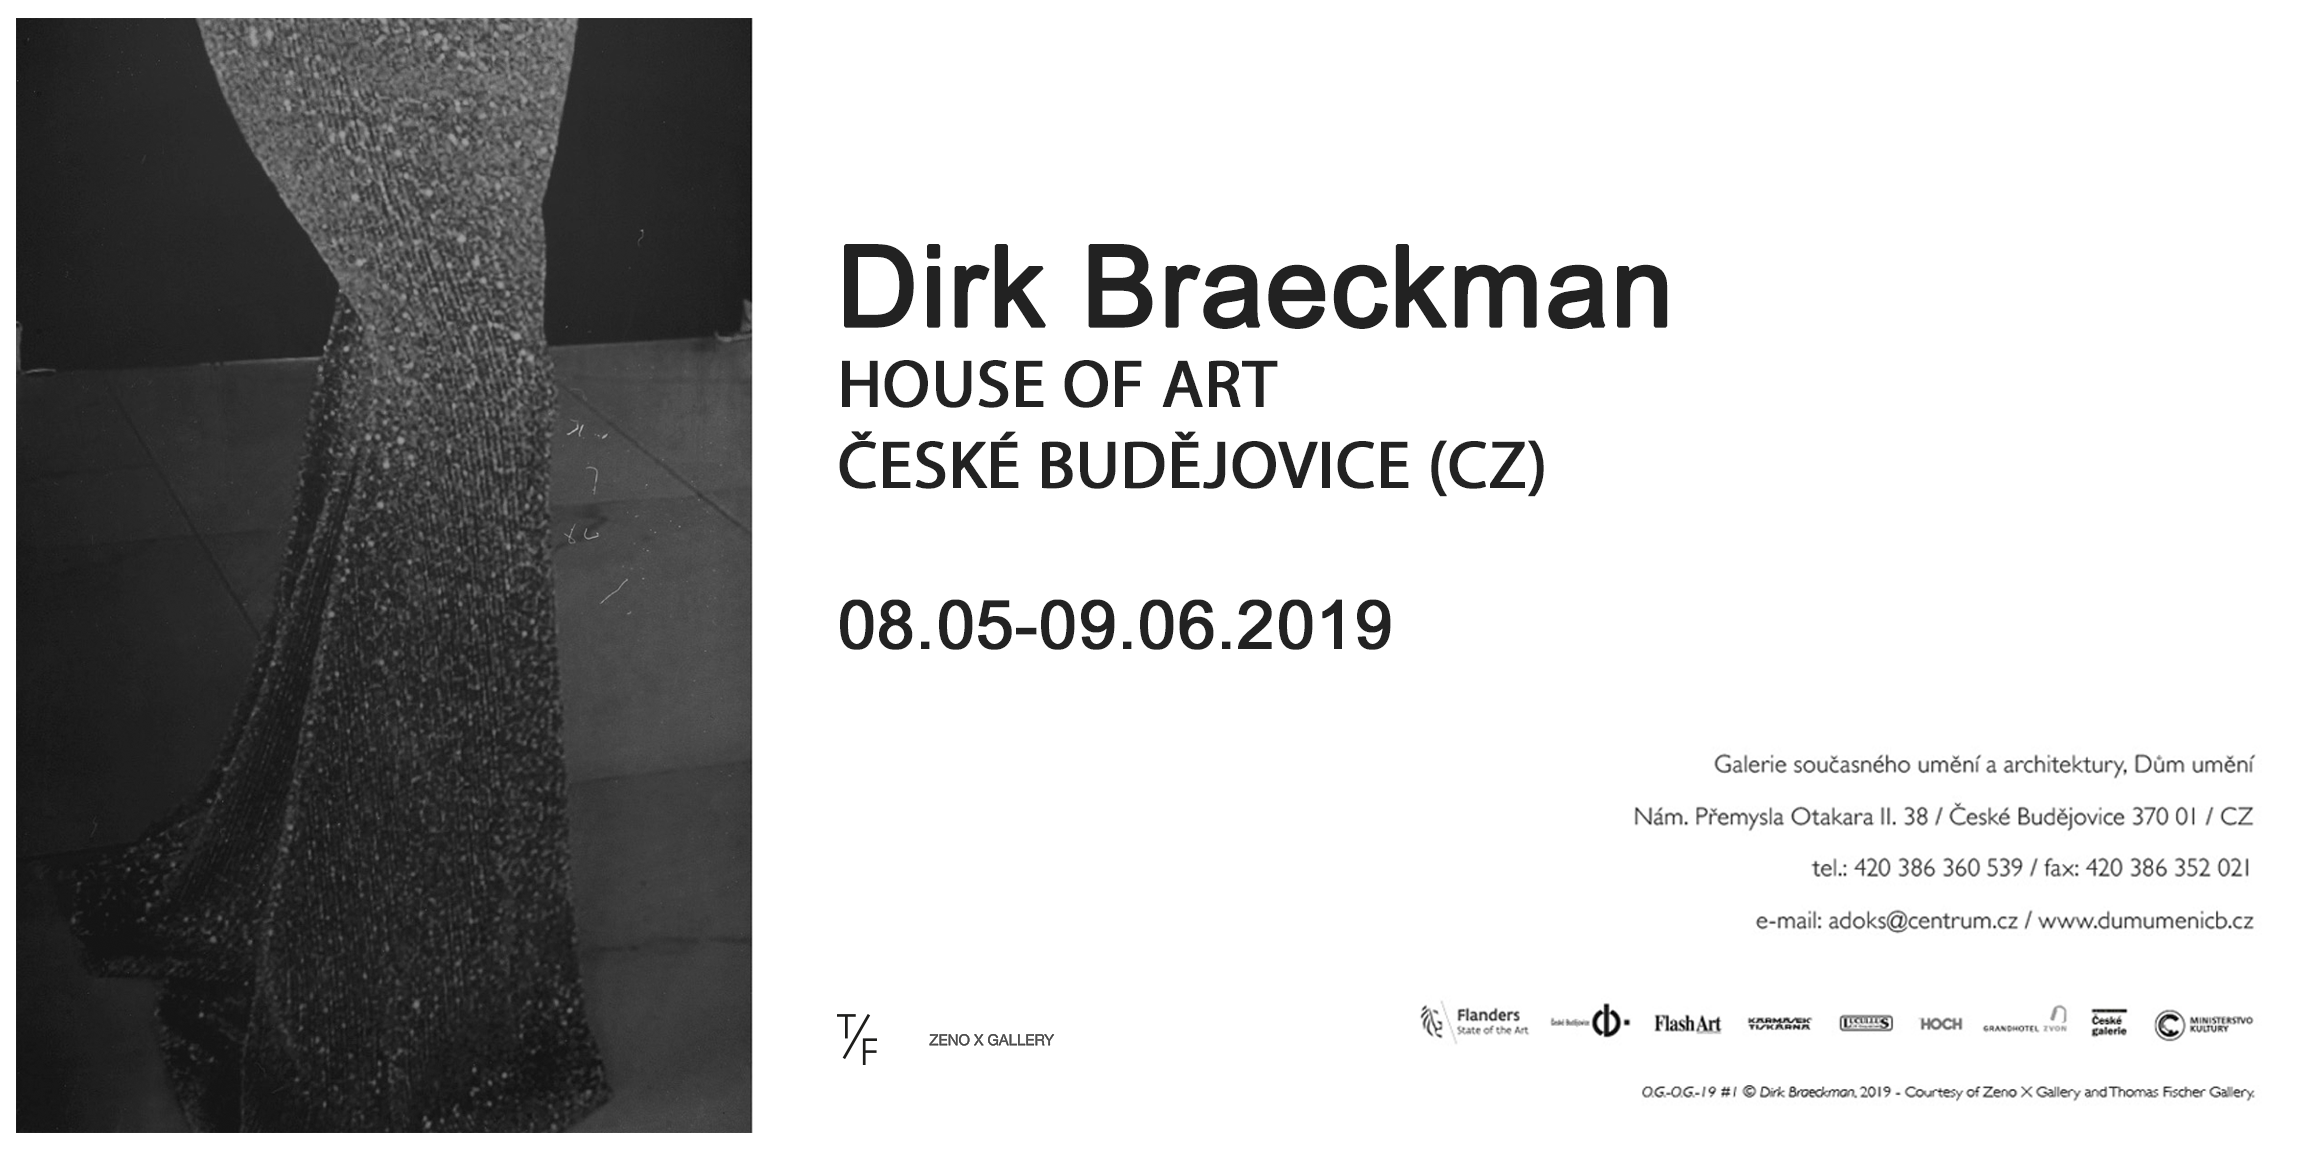 Dirk Braeckman at House of Art Budweis (CZ) — 08.05–09.06.2019